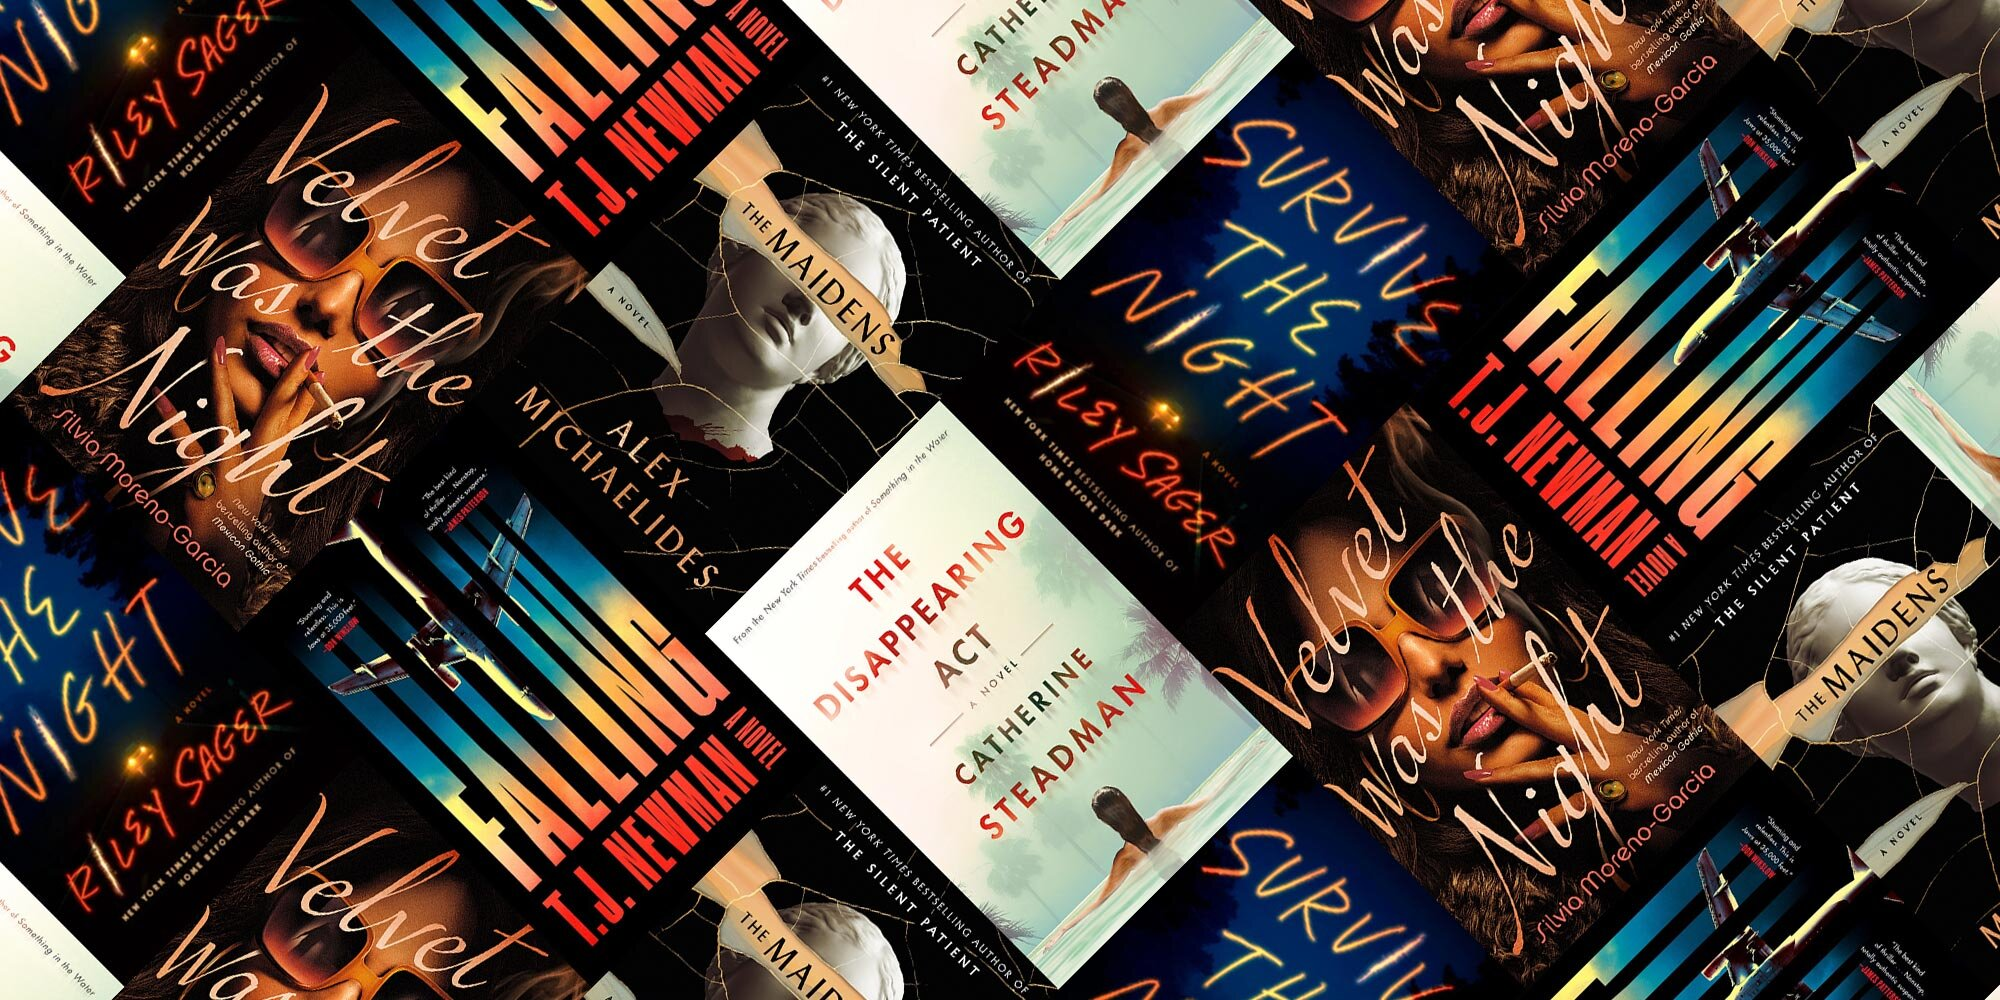 The best thrillers to read this summer